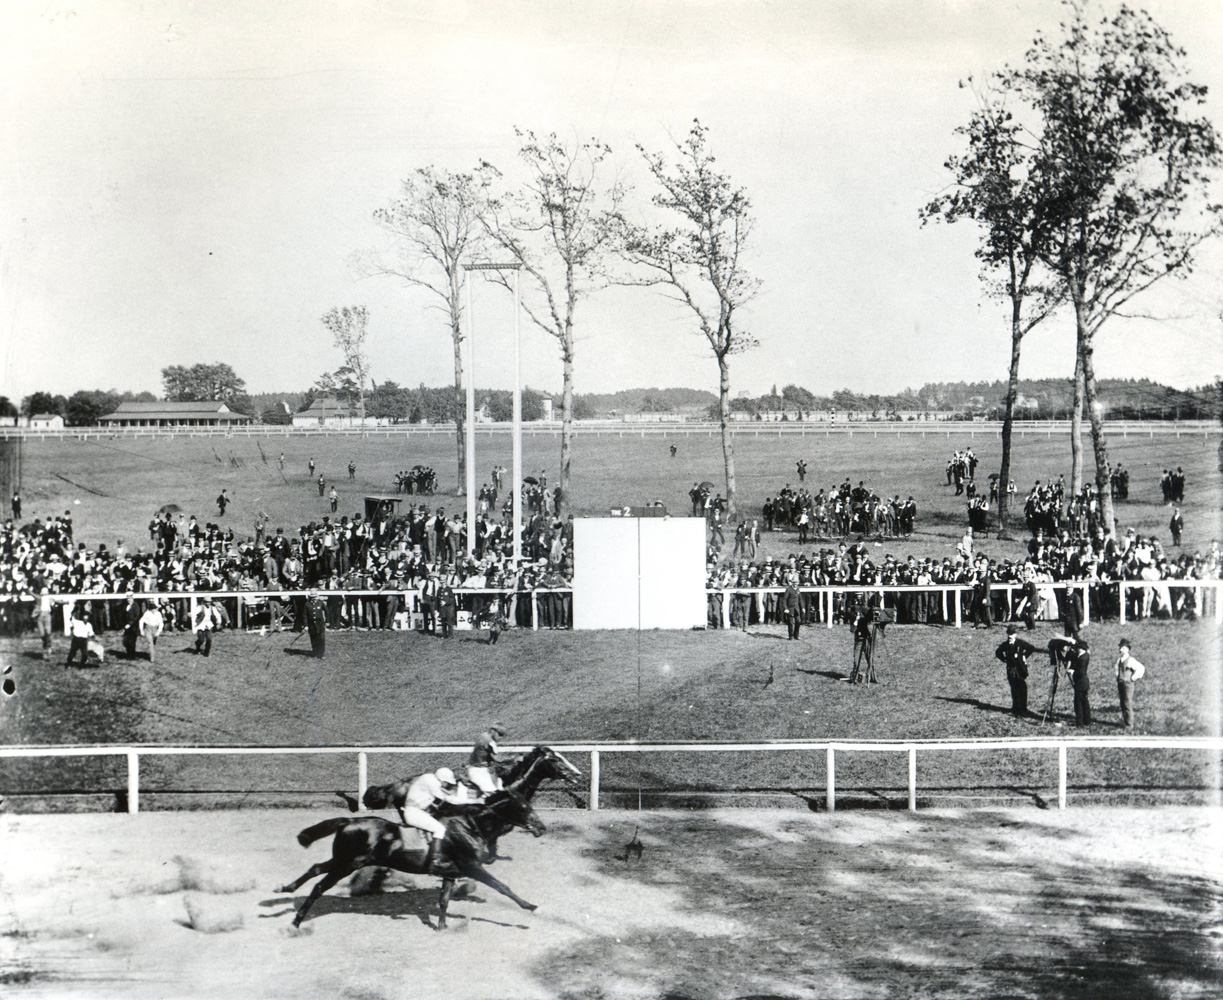 Isaac Murphy and Salvator defeating Snapper Garrison in Tenny in their match race at Sheepshead Bay in 1890 (Keeneland Library Hemment Collection/Museum Collection)